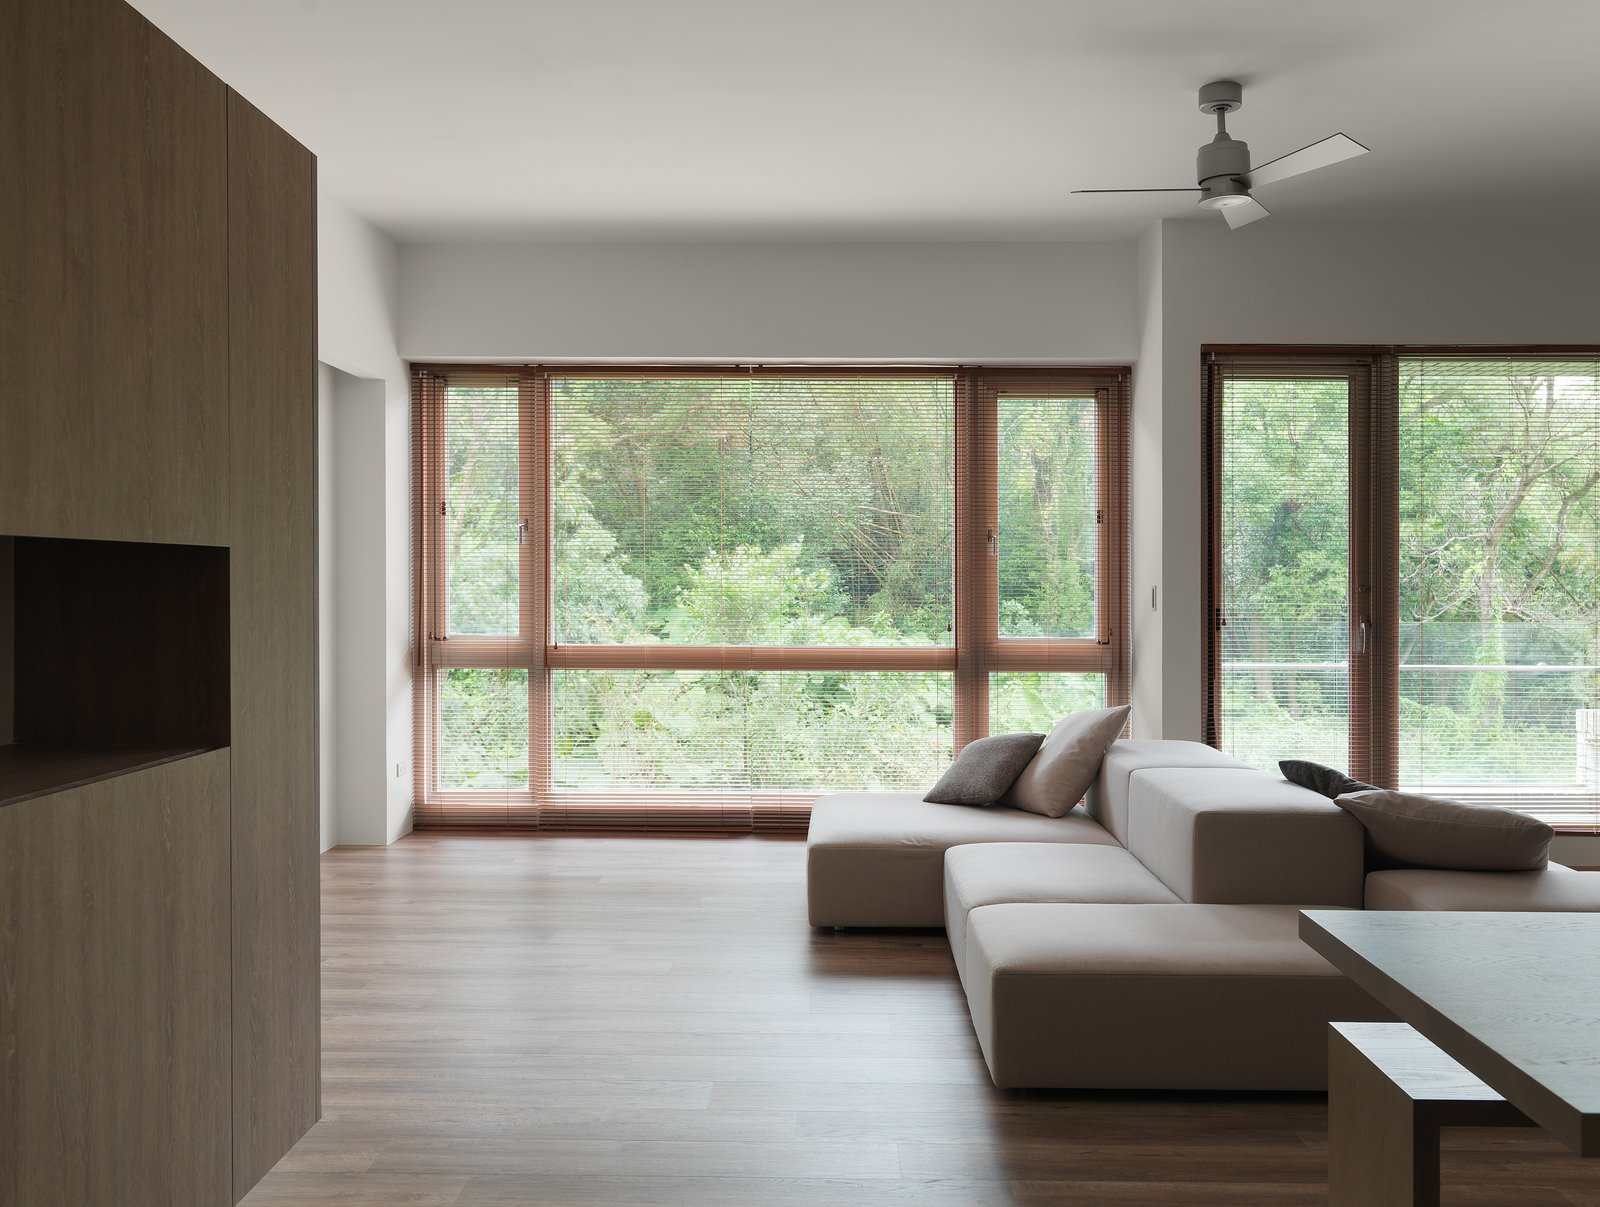 Living space with lush forest view.  H Residence by Marty Chou Architecture